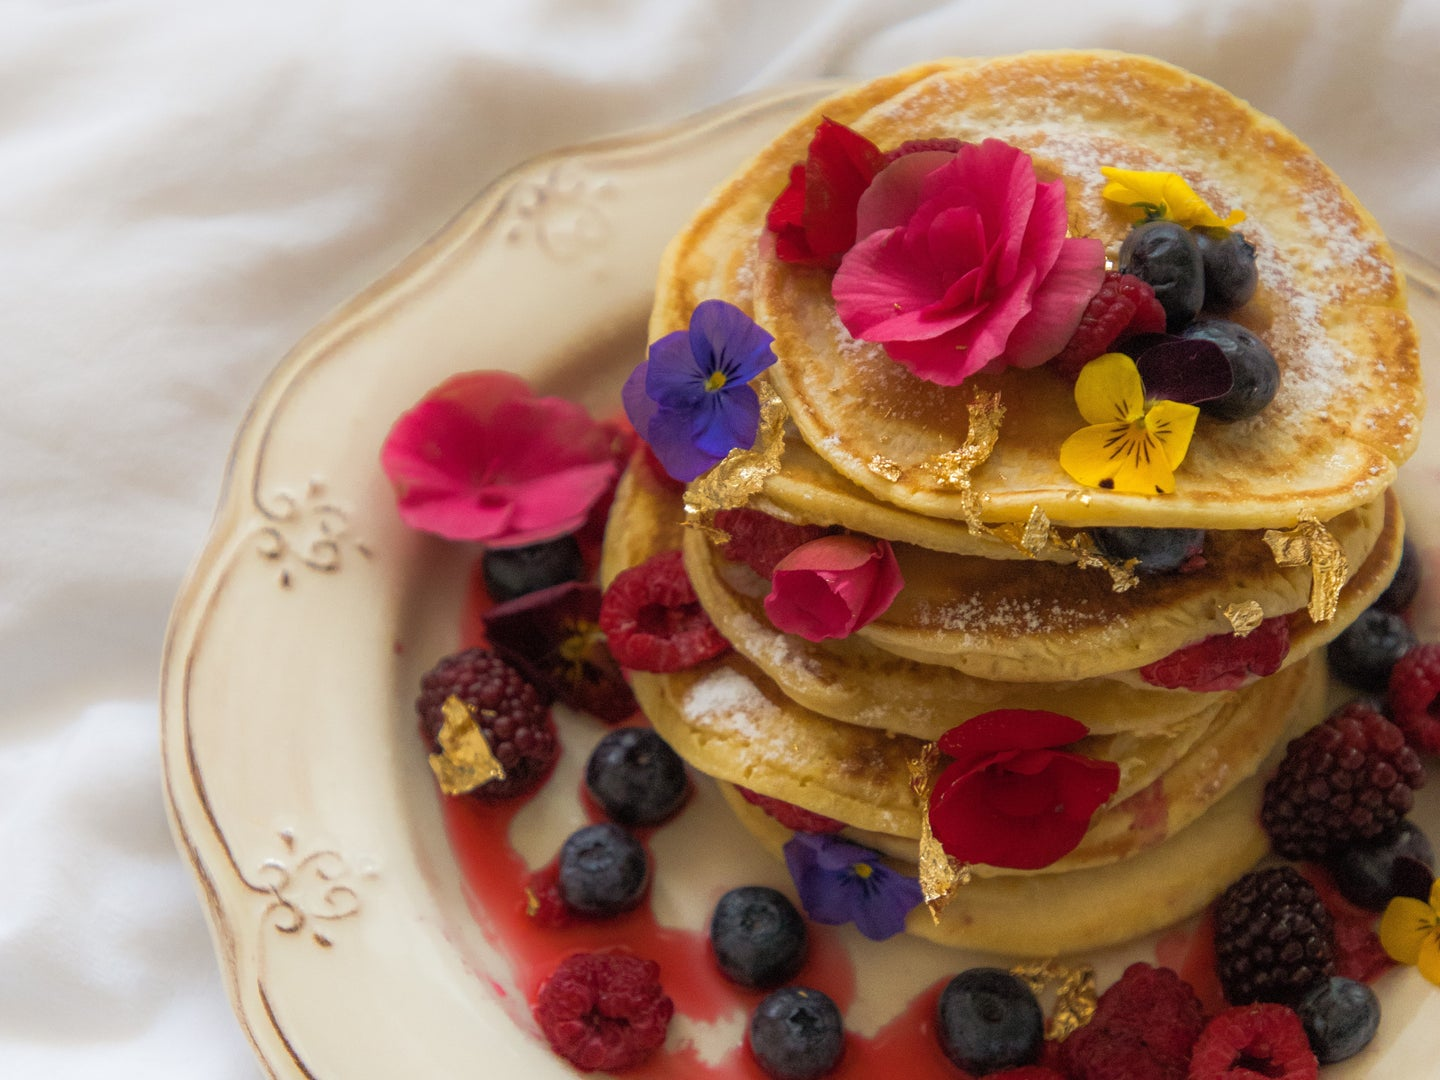 A stack of pancakes topped with berries and edible flowers, on a white plate atop a white tablecloth.